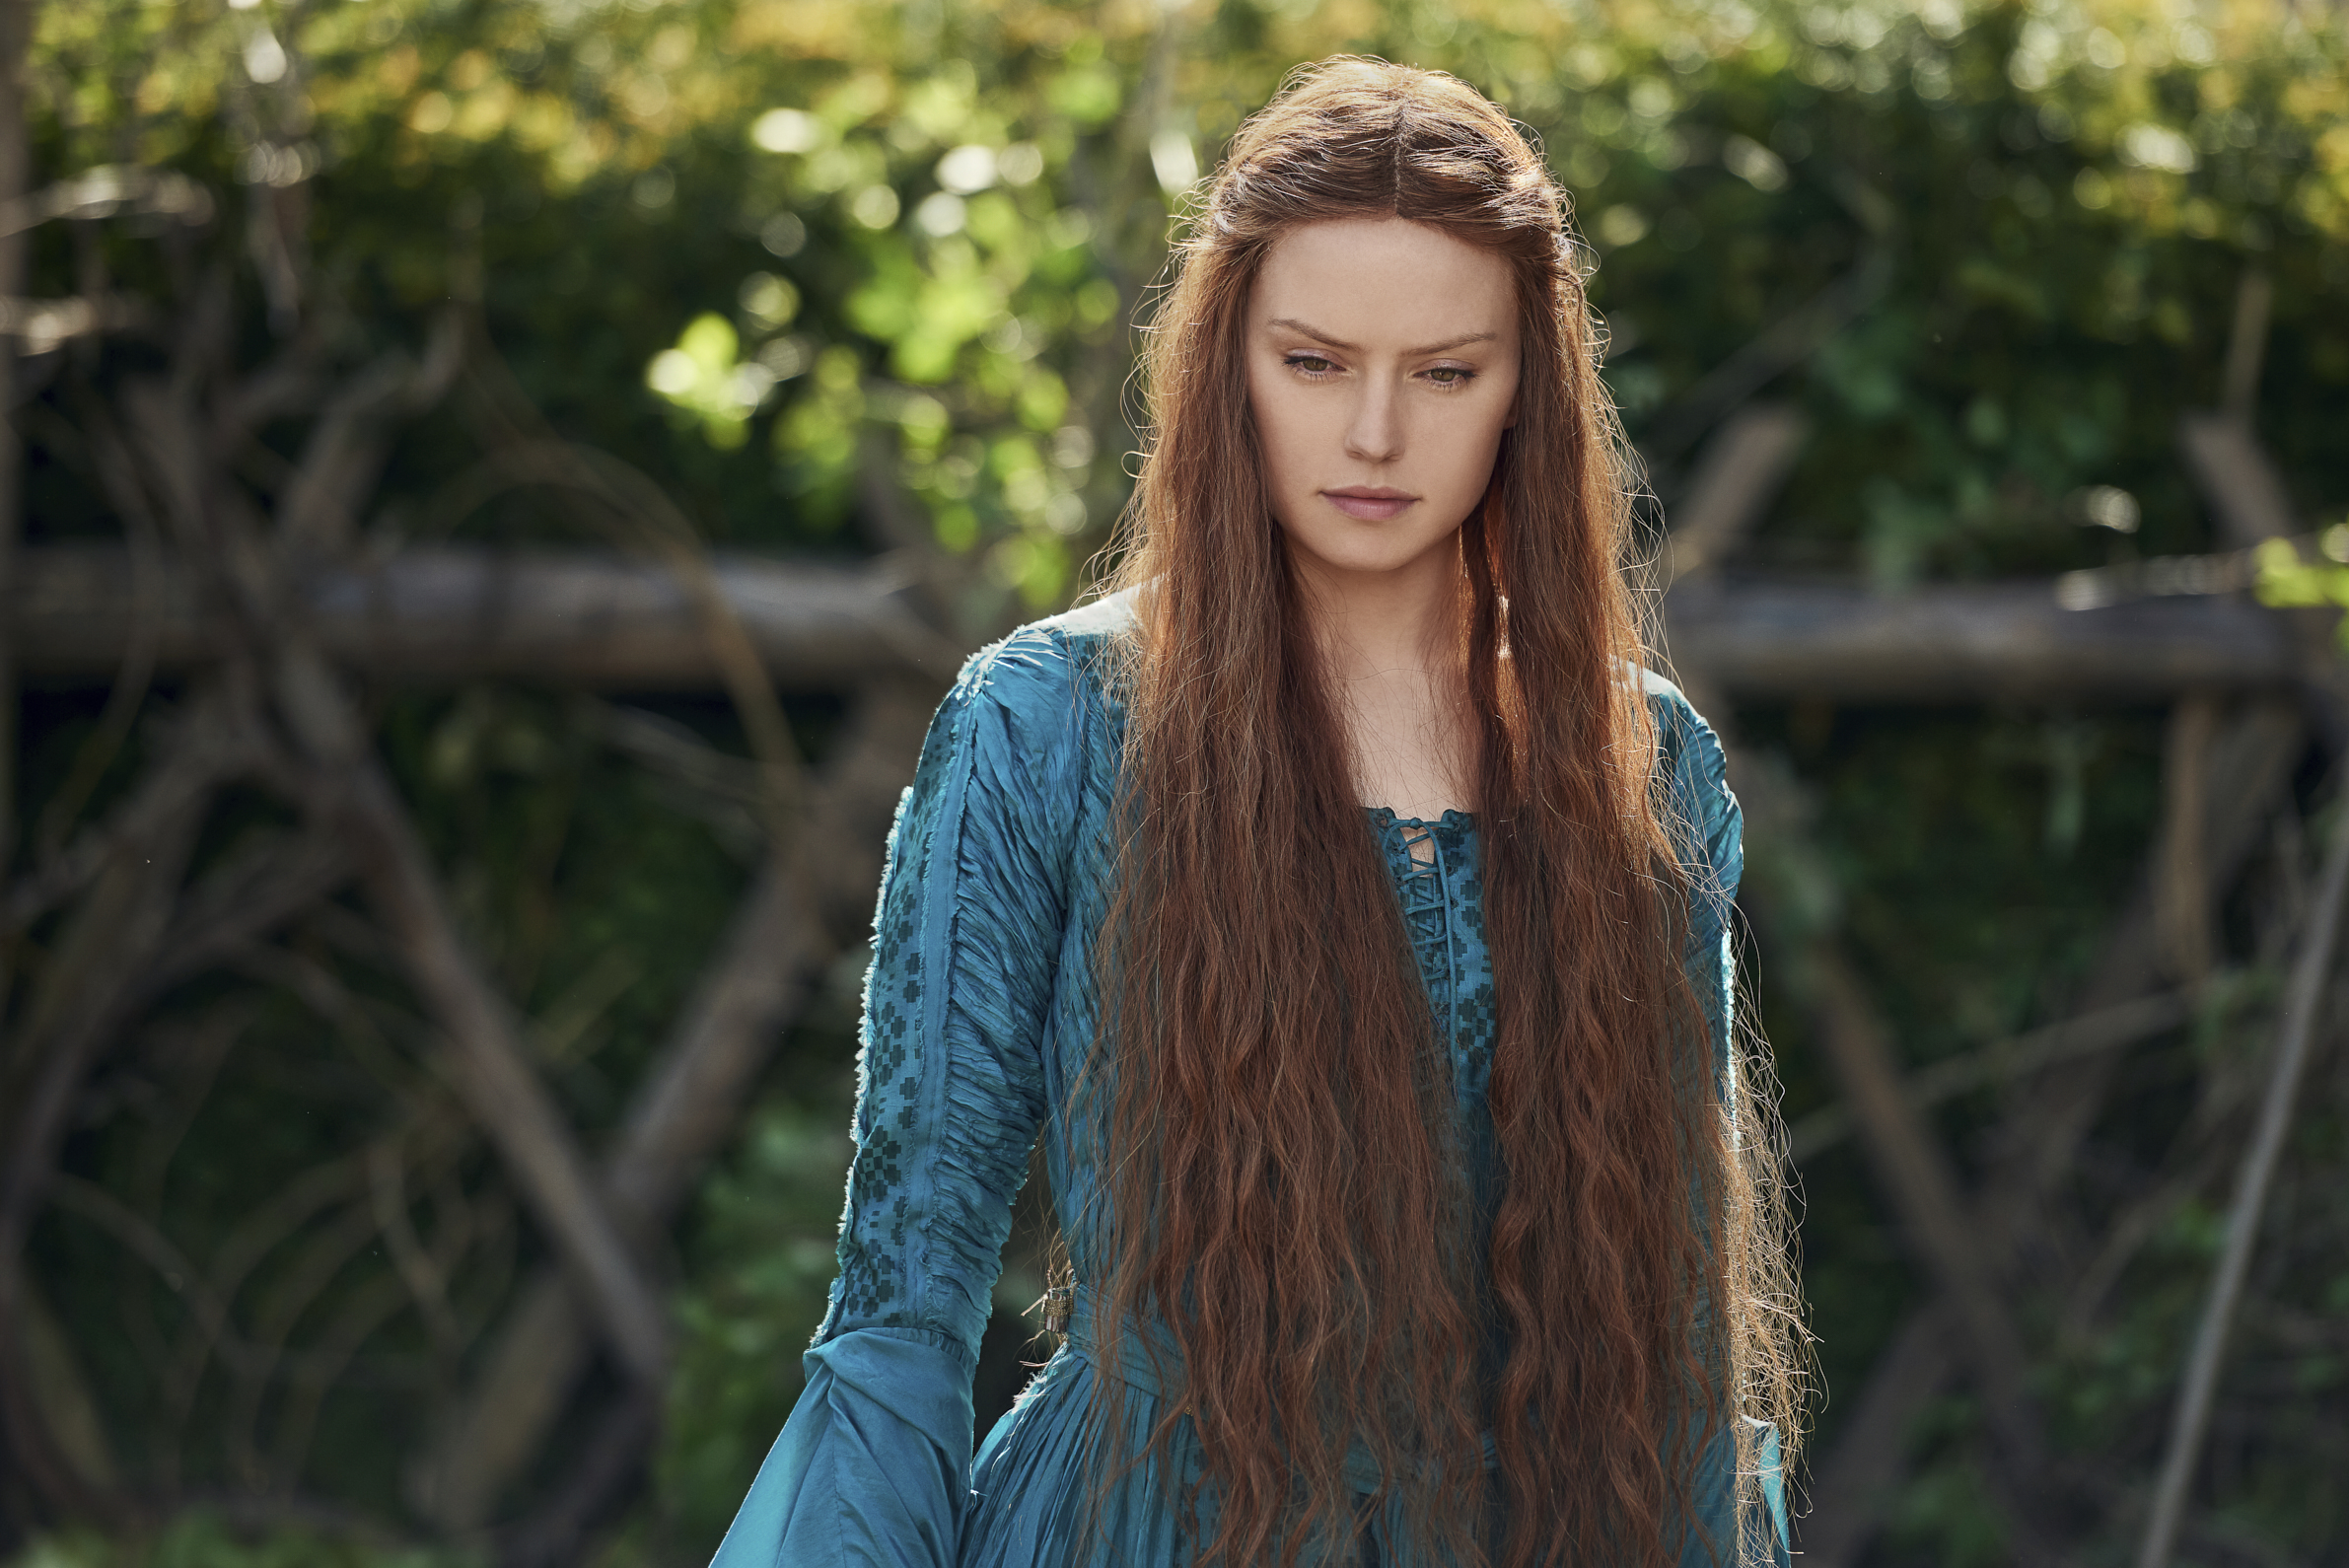 Daisy Ridley makes her debut as Ophelia in first look photo